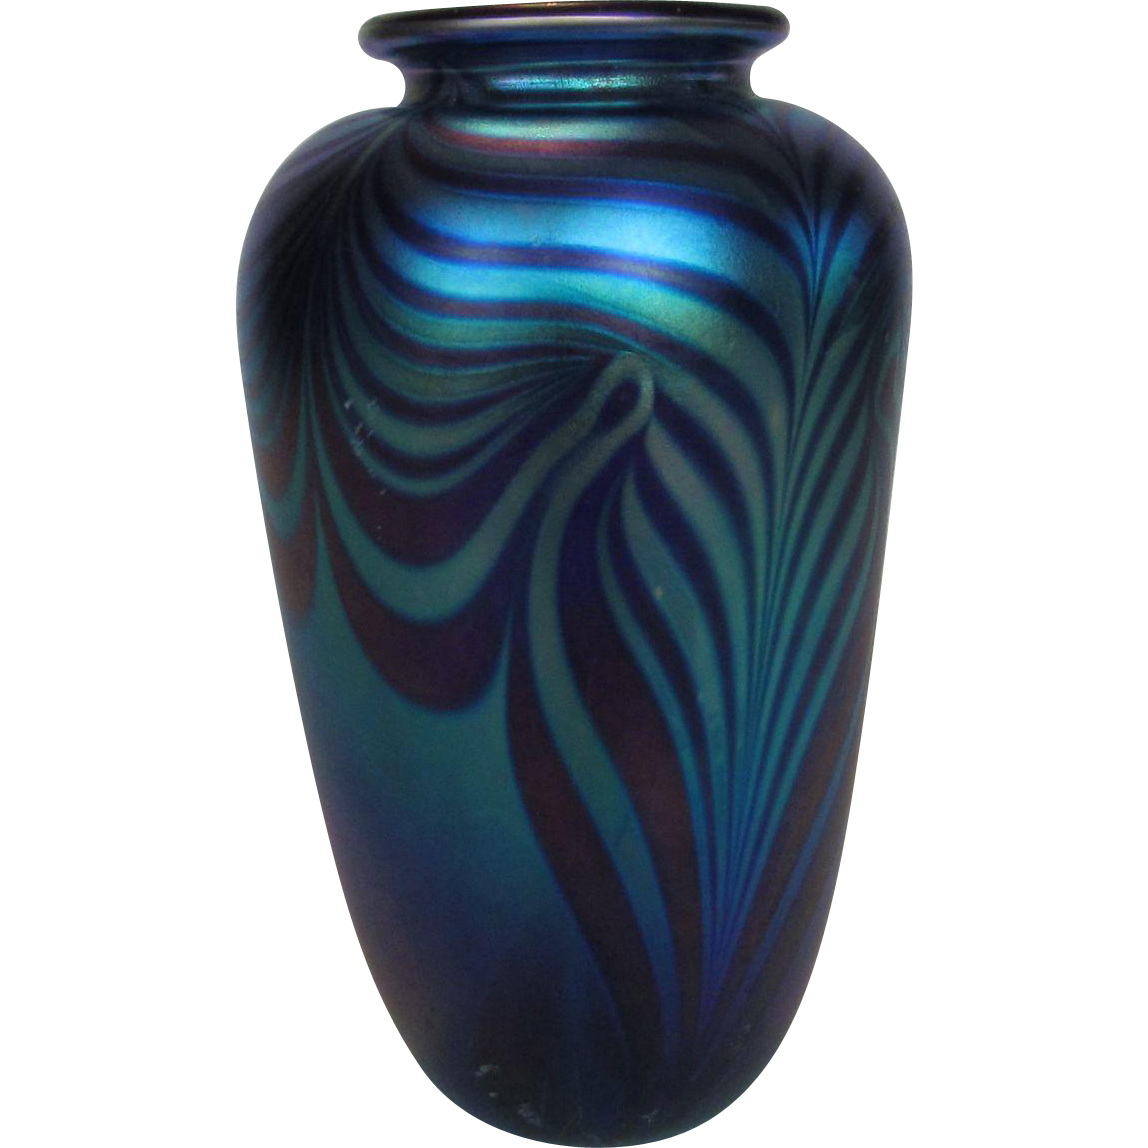 Eickholt glass vase in beautiful pulled feather multi